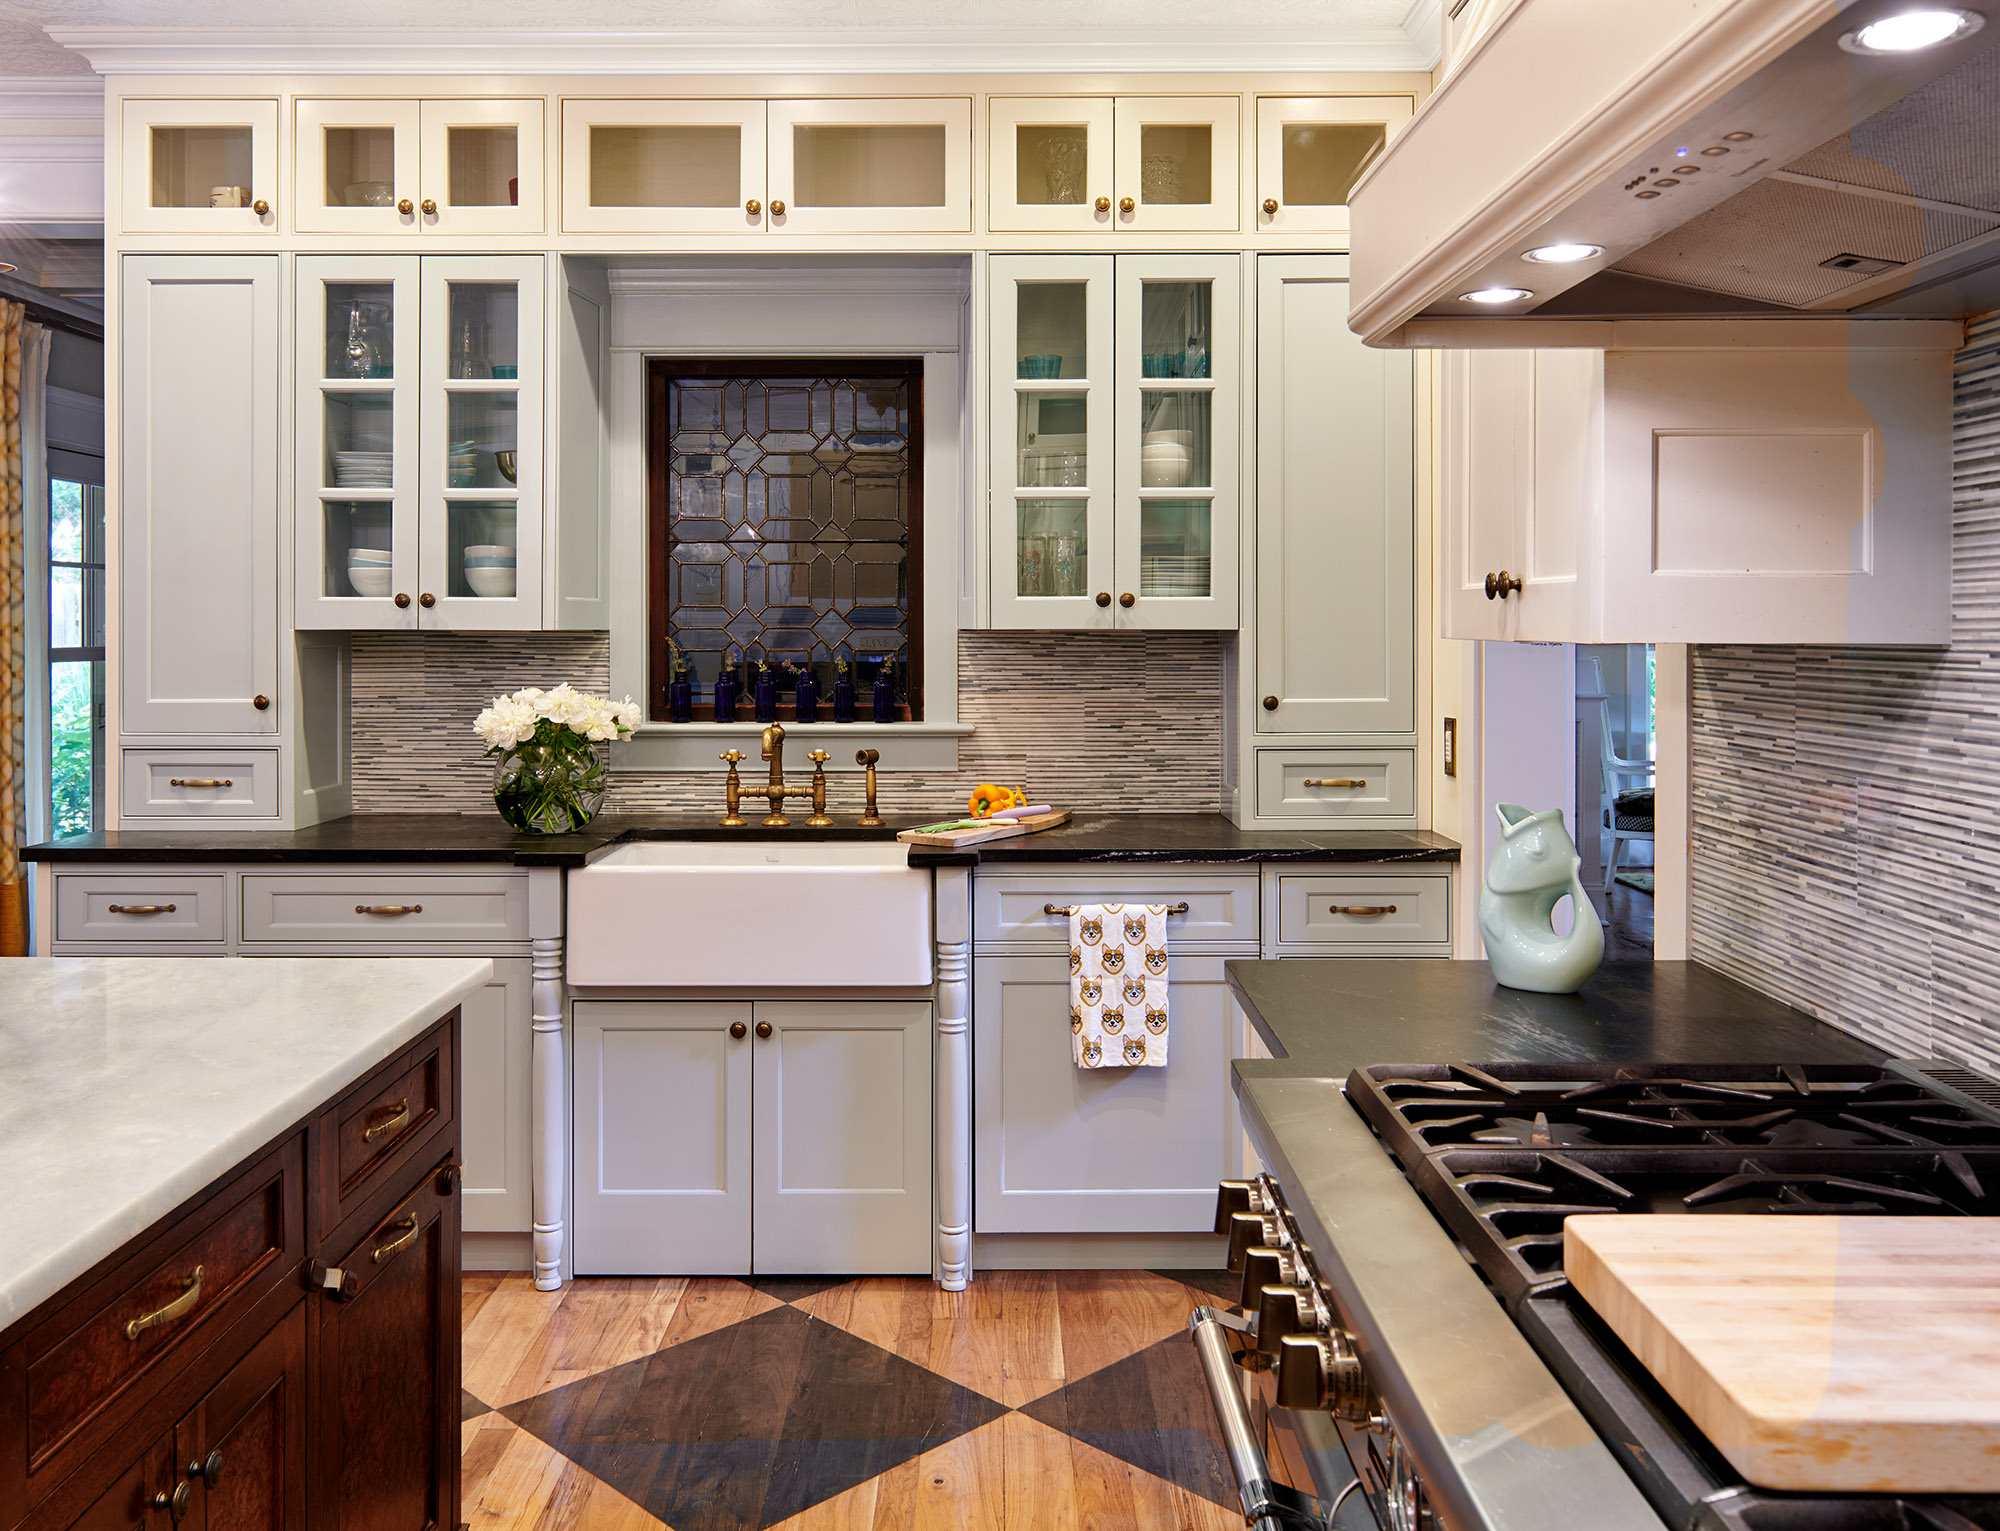 Glass Front Cabinet Doors in Kitchen, cream color cabinets with glass fronts